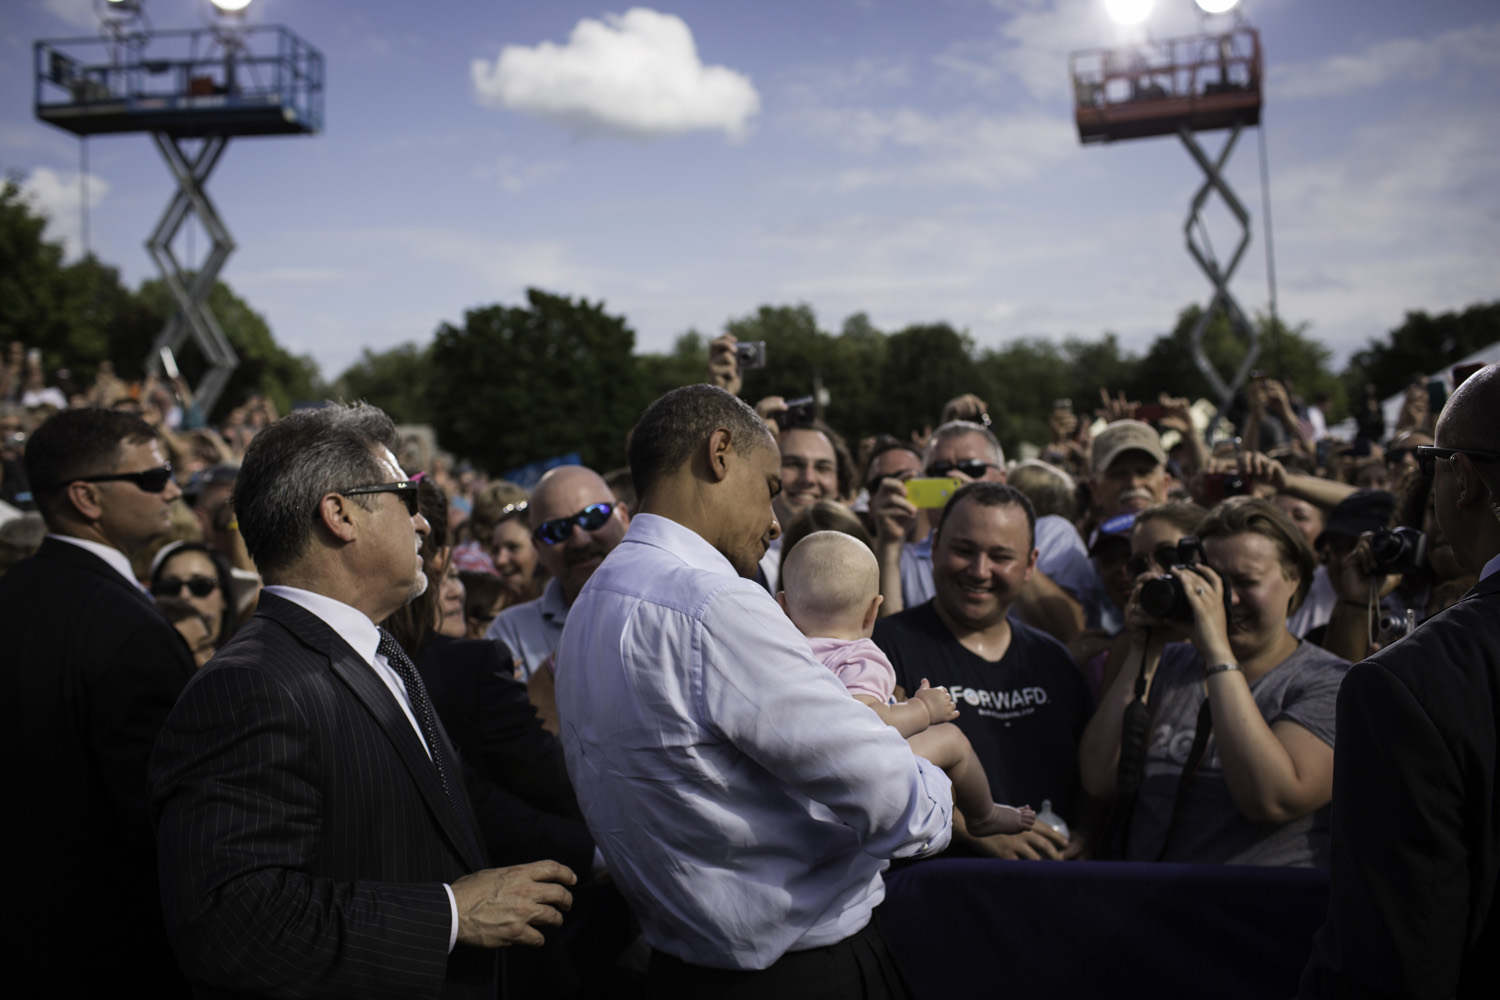 After speaking, President Barack Obama greets a young supporter during a rally at the Rochester Commons in Rochester.